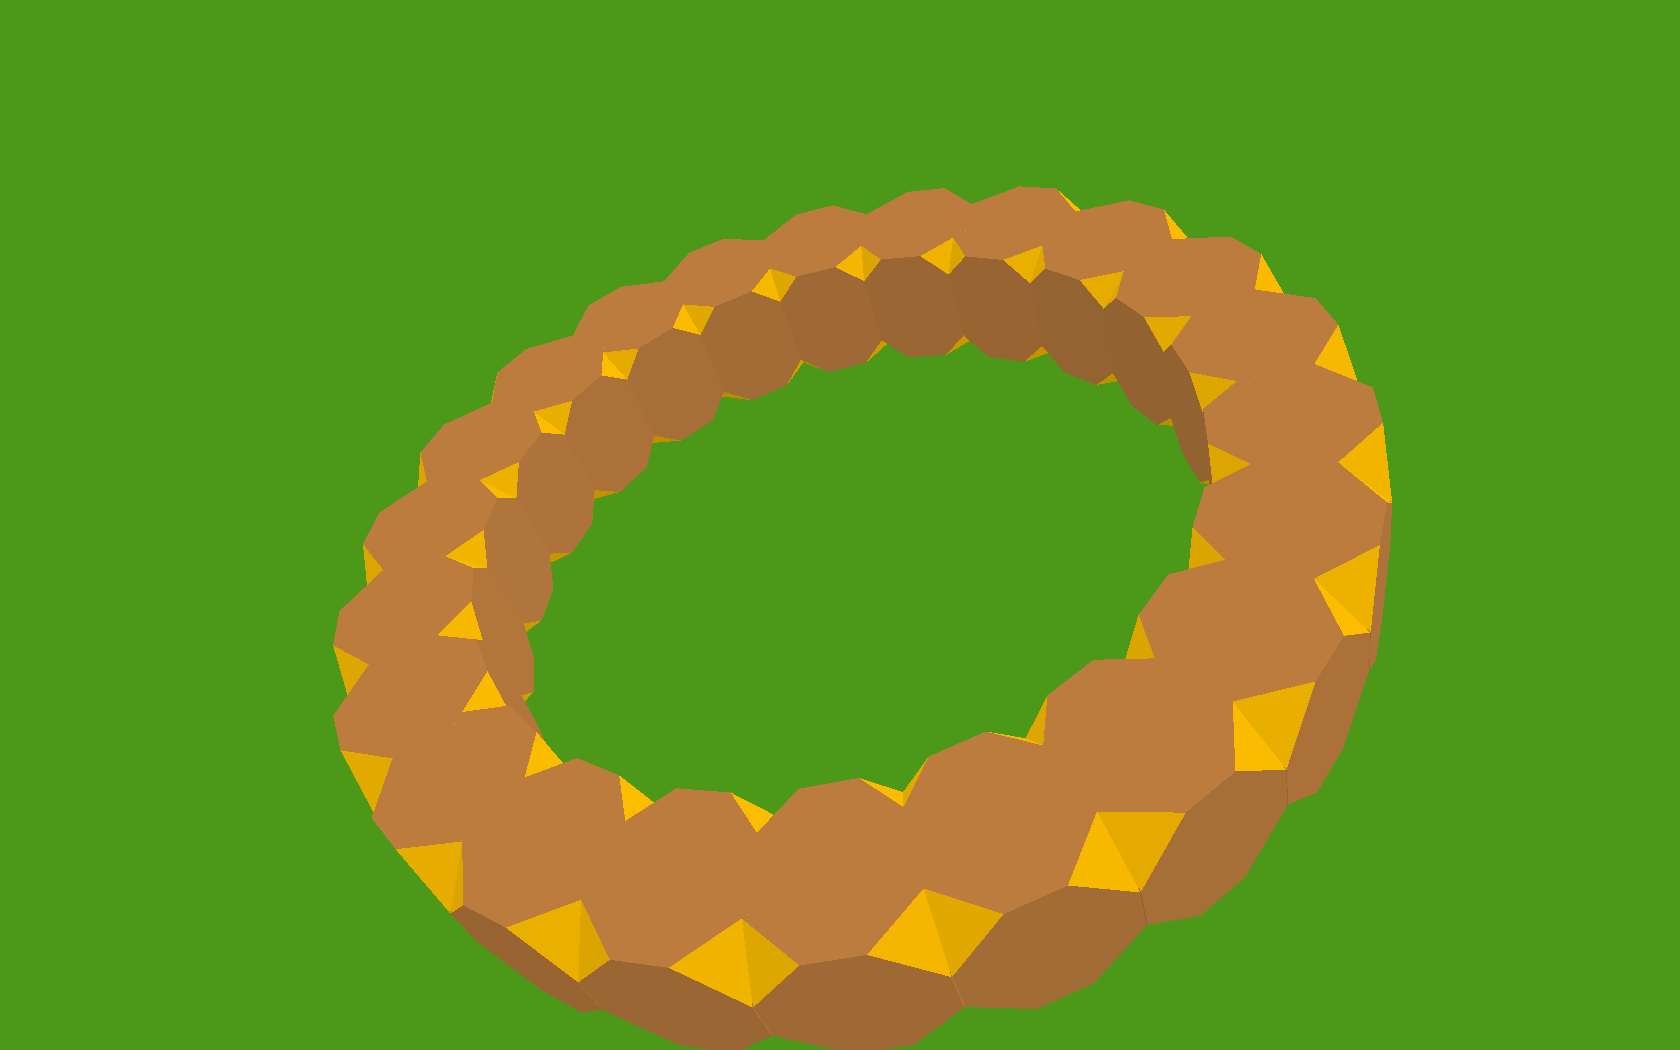 A ring of truncated cubes